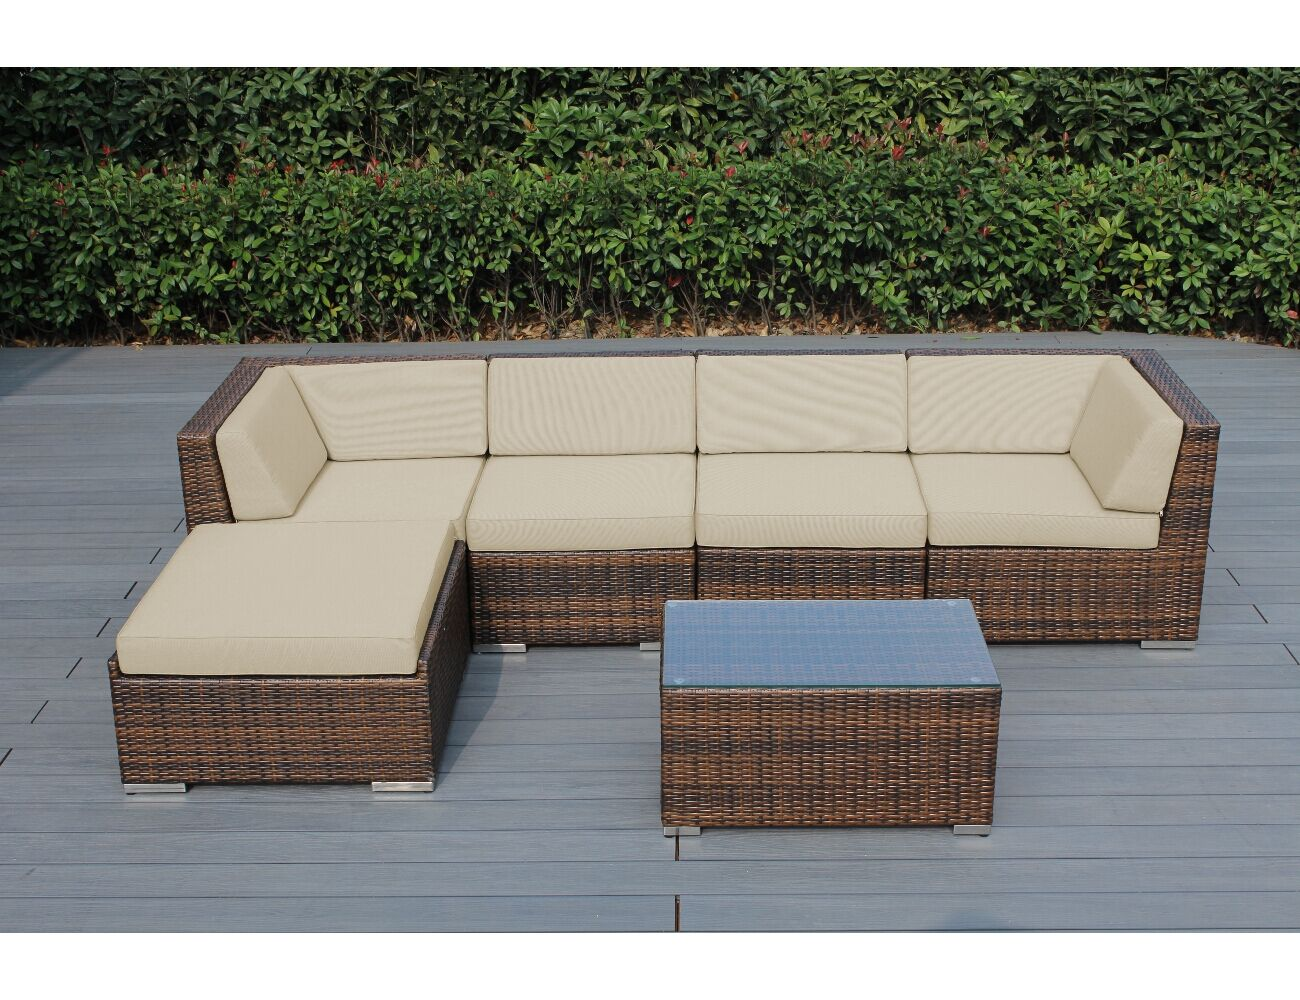 Baril 6 Piece Sectional Set with Cushions Frame Finish: Mixed Brown, Cushion Color: Beige